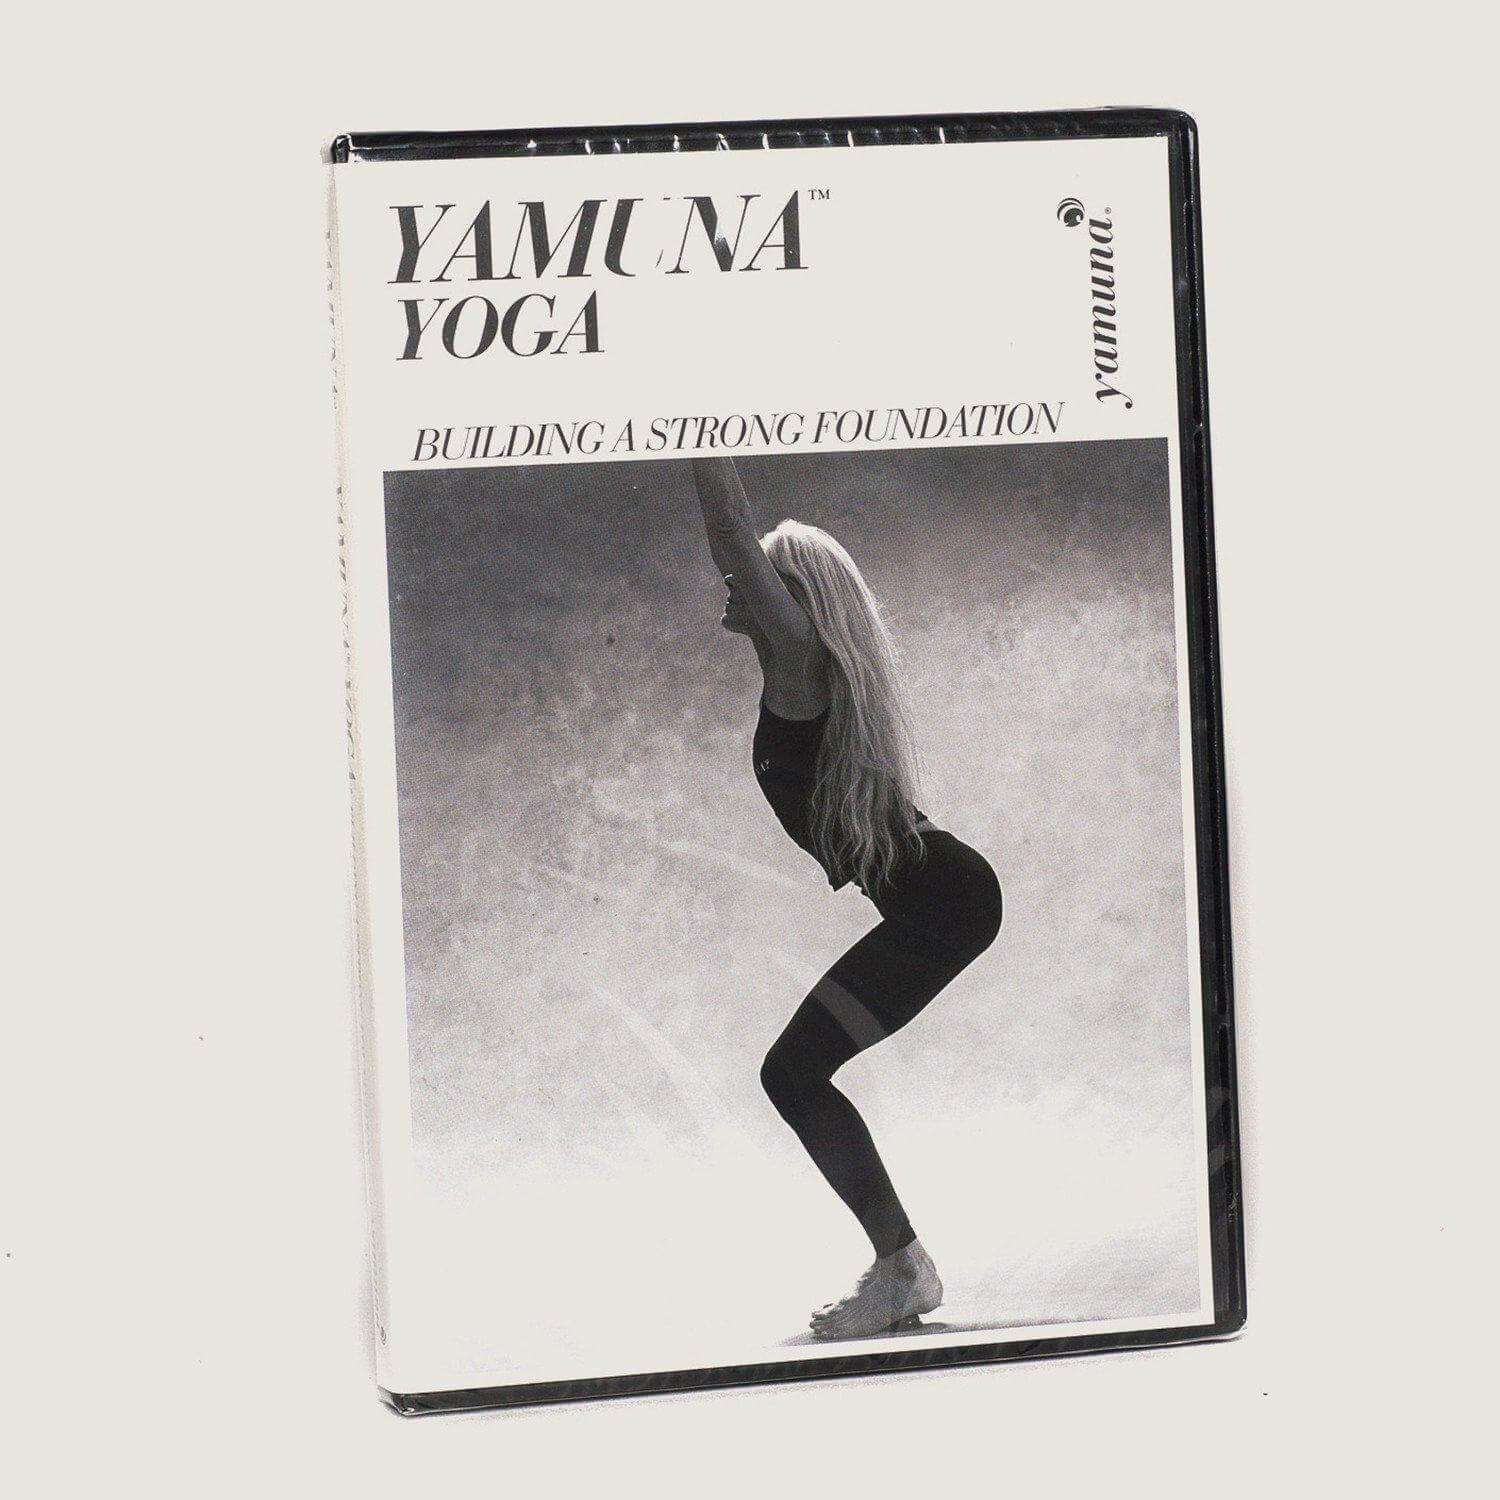 Yamuna Body Rolling Yoga DVD